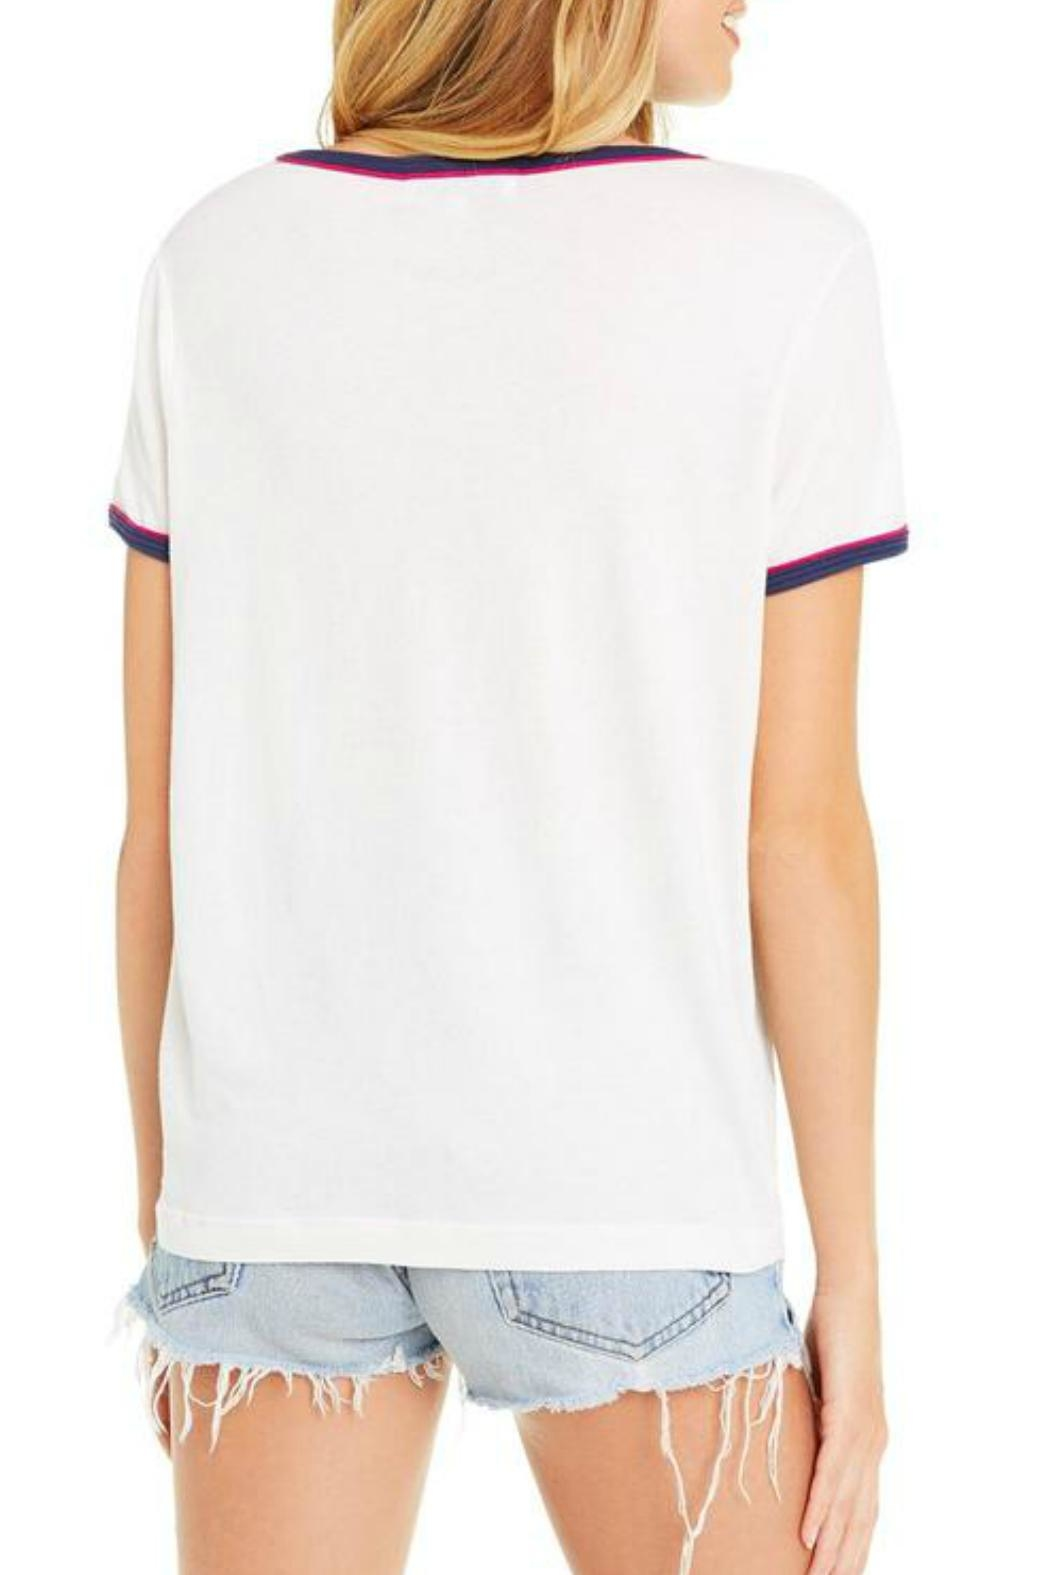 Wildfox Vibe-On-This Tee - Back Cropped Image